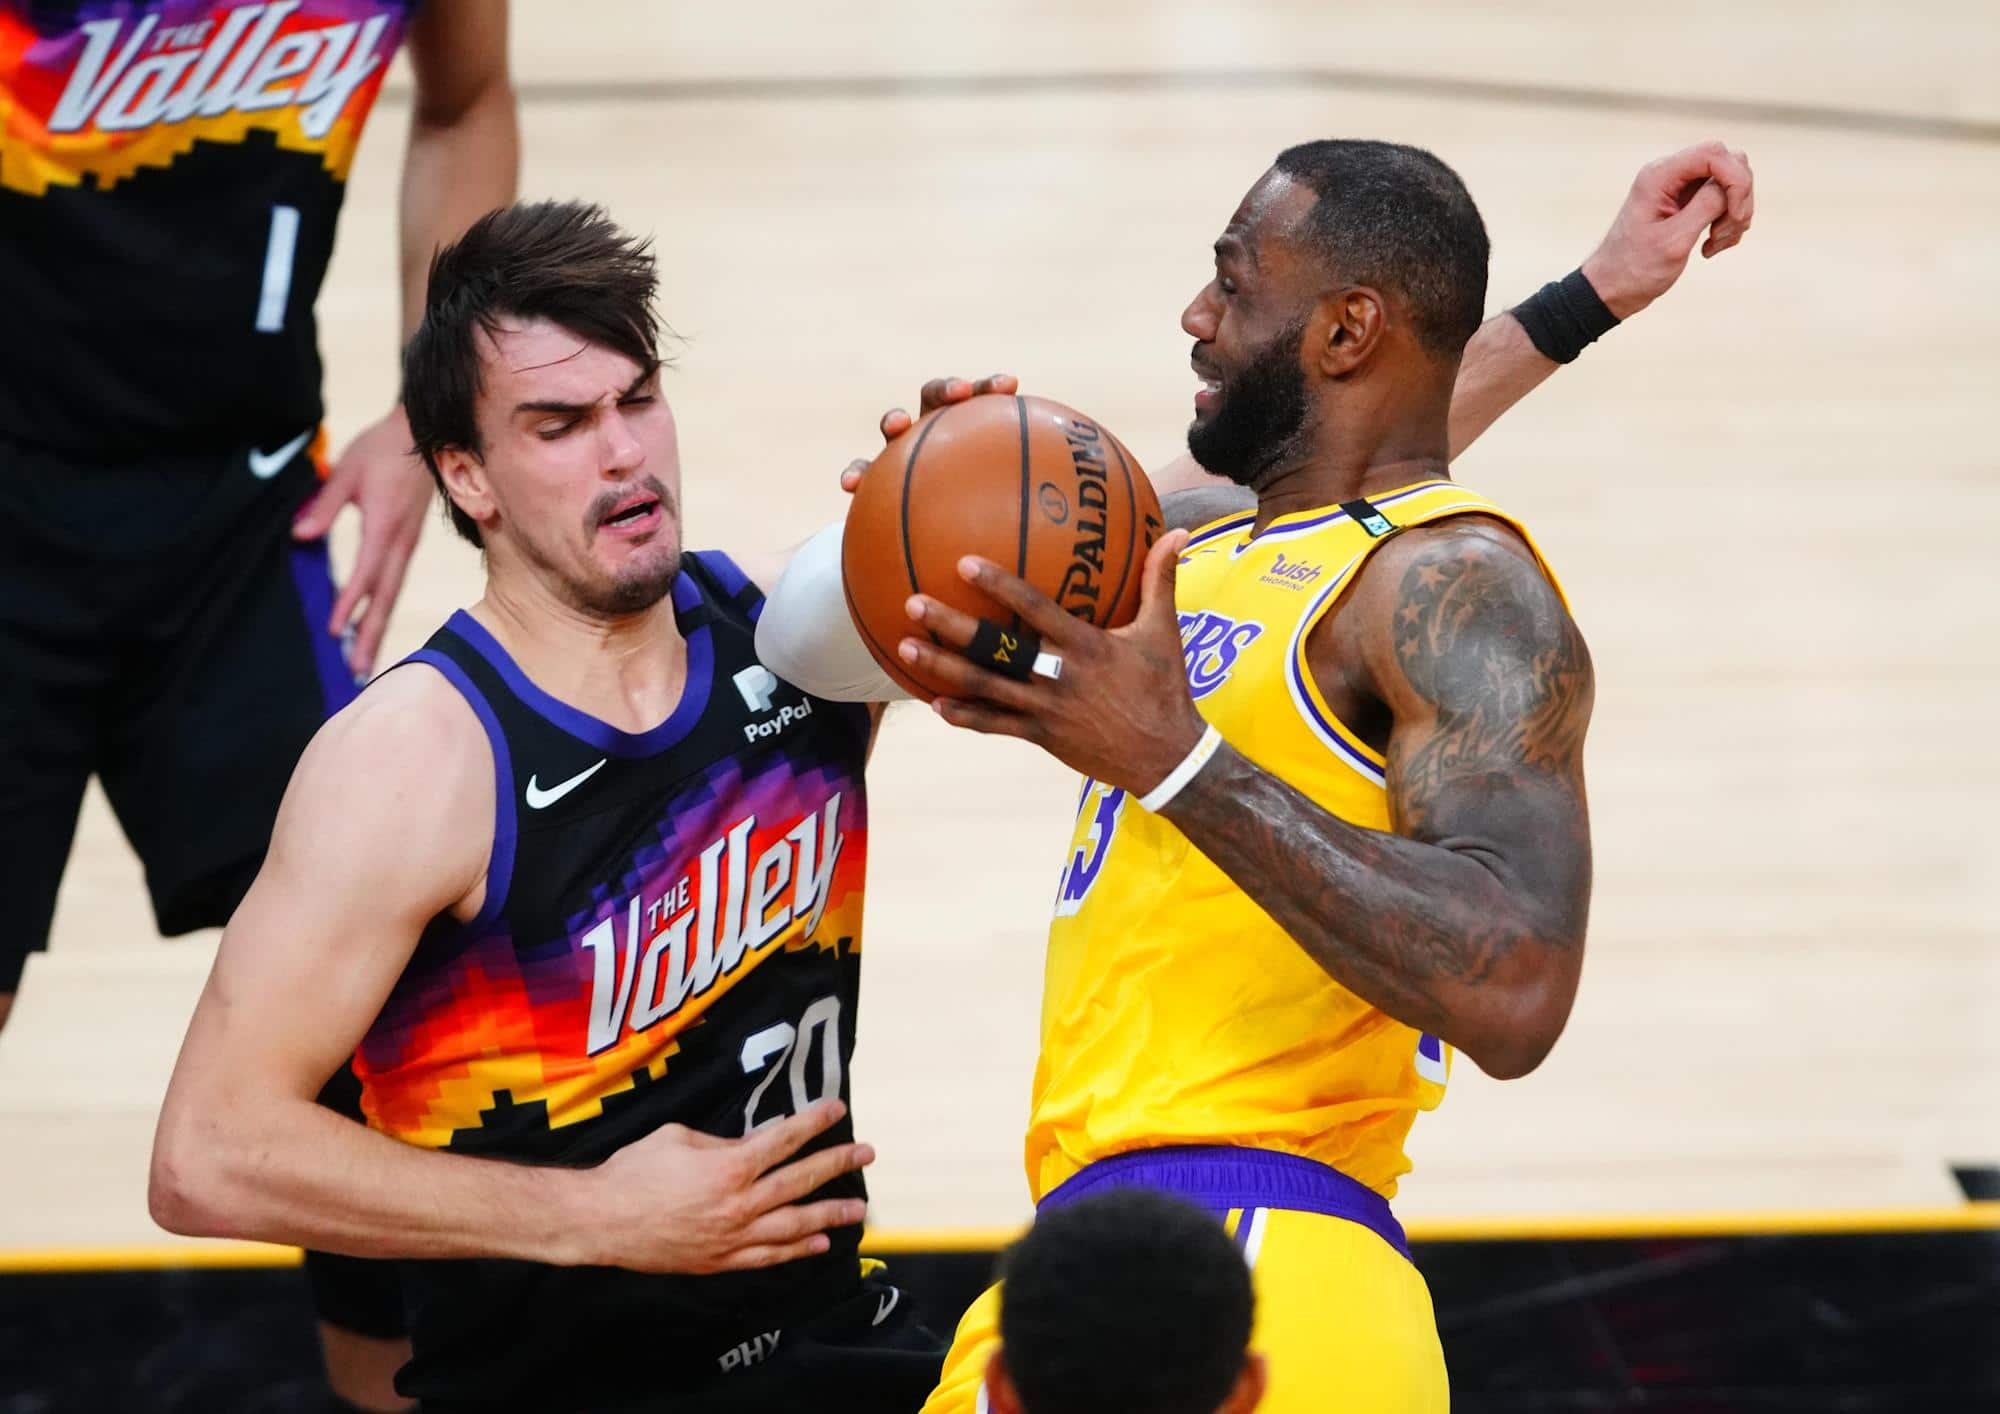 suns-at-lakers-game-3-lineups-smash-reviews-and-broadcast-files-for-thursday.jpg